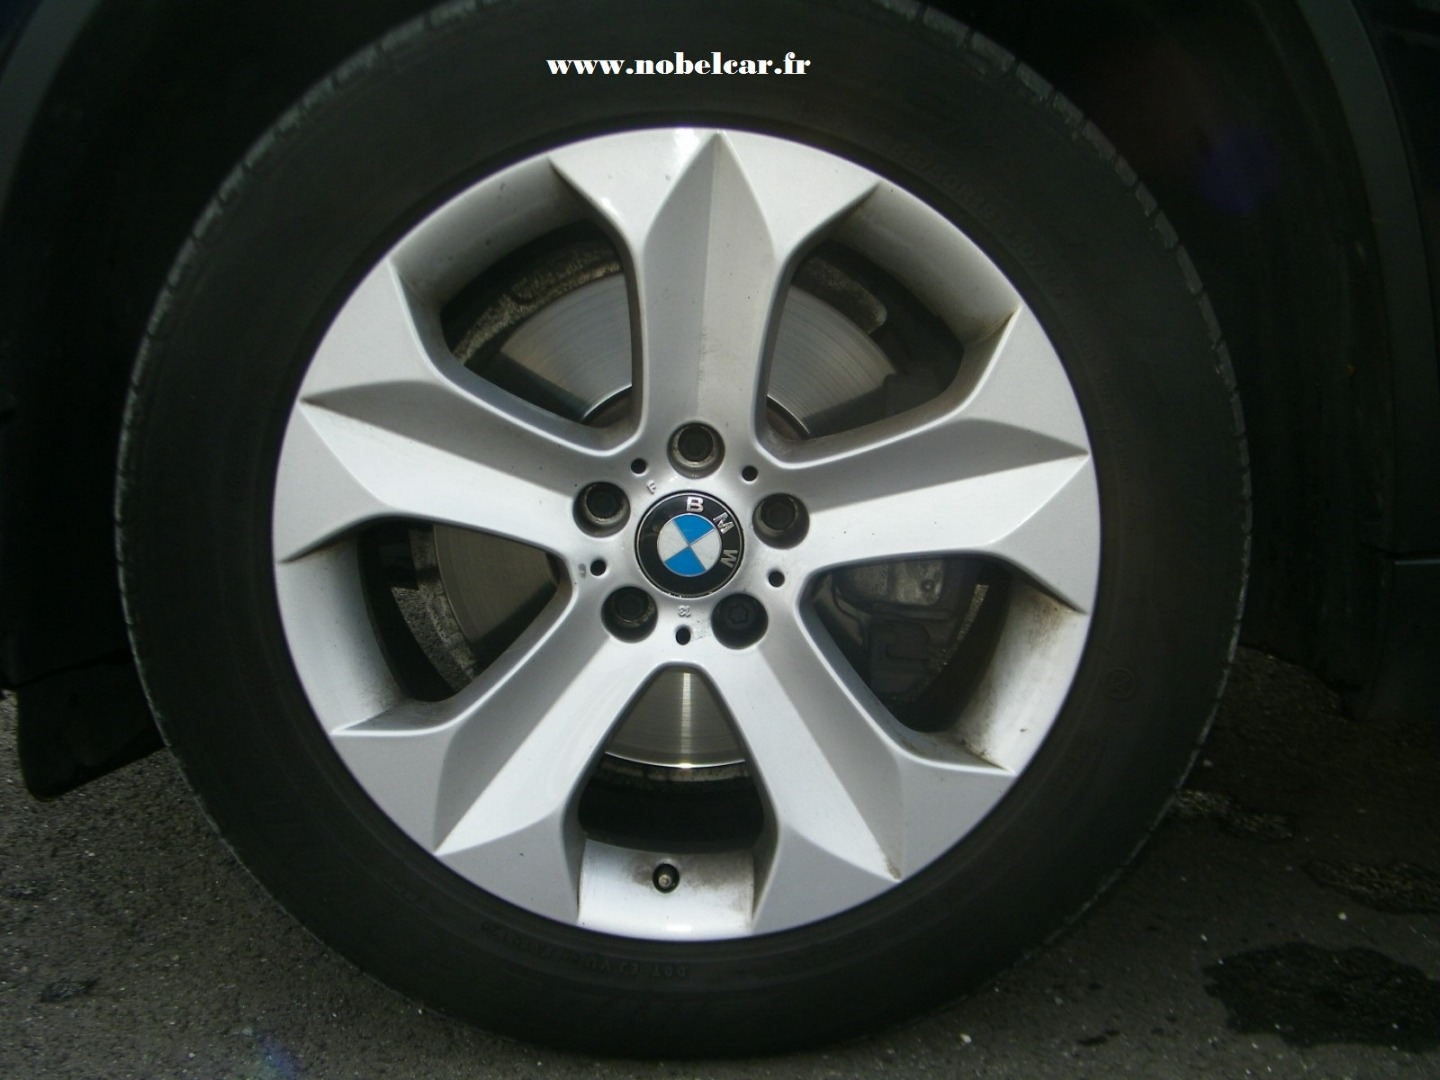 BMW X6 335D occasion gironde 33 et grand sud-ouest